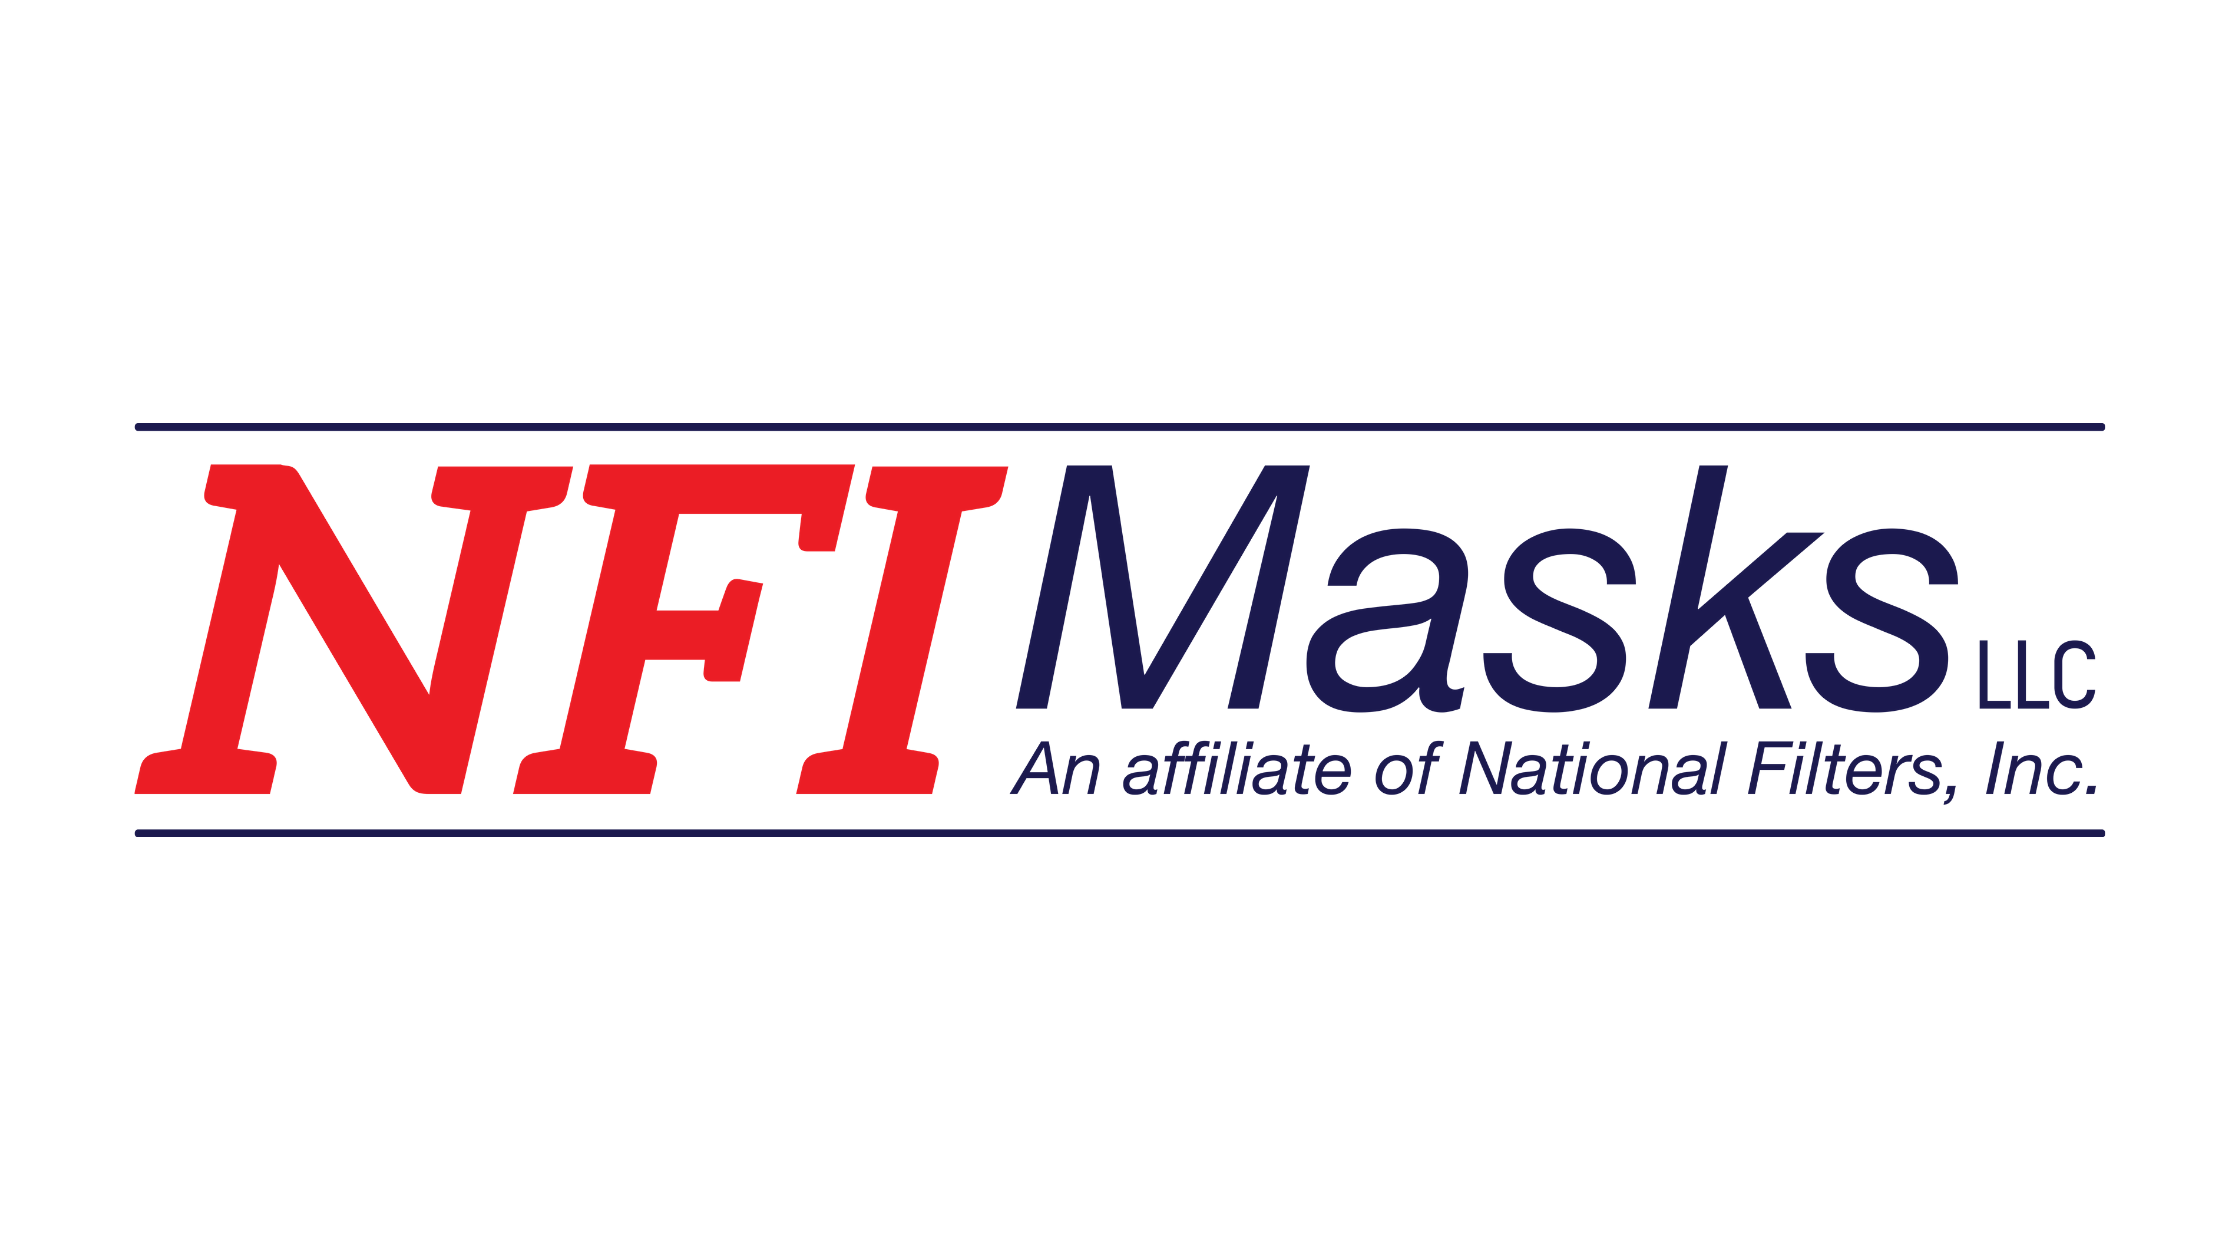 NFI Masks joins American mask manufacturers across the country